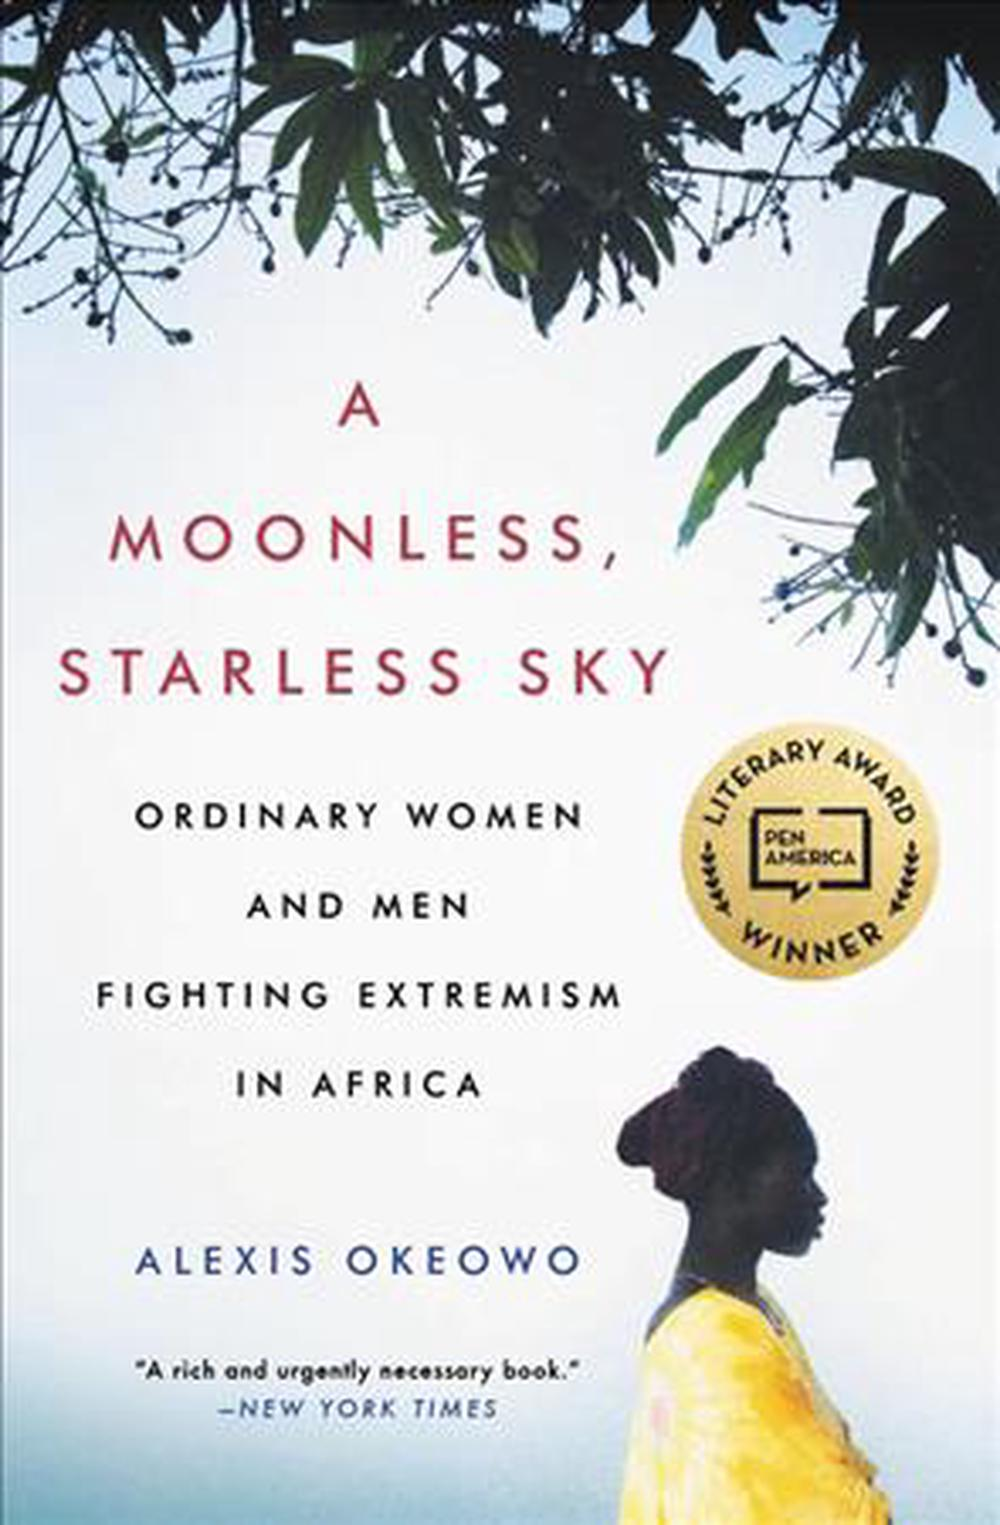 A Moonless, Starless Sky: Ordinary Women and Men Fighting Extremism in Africa